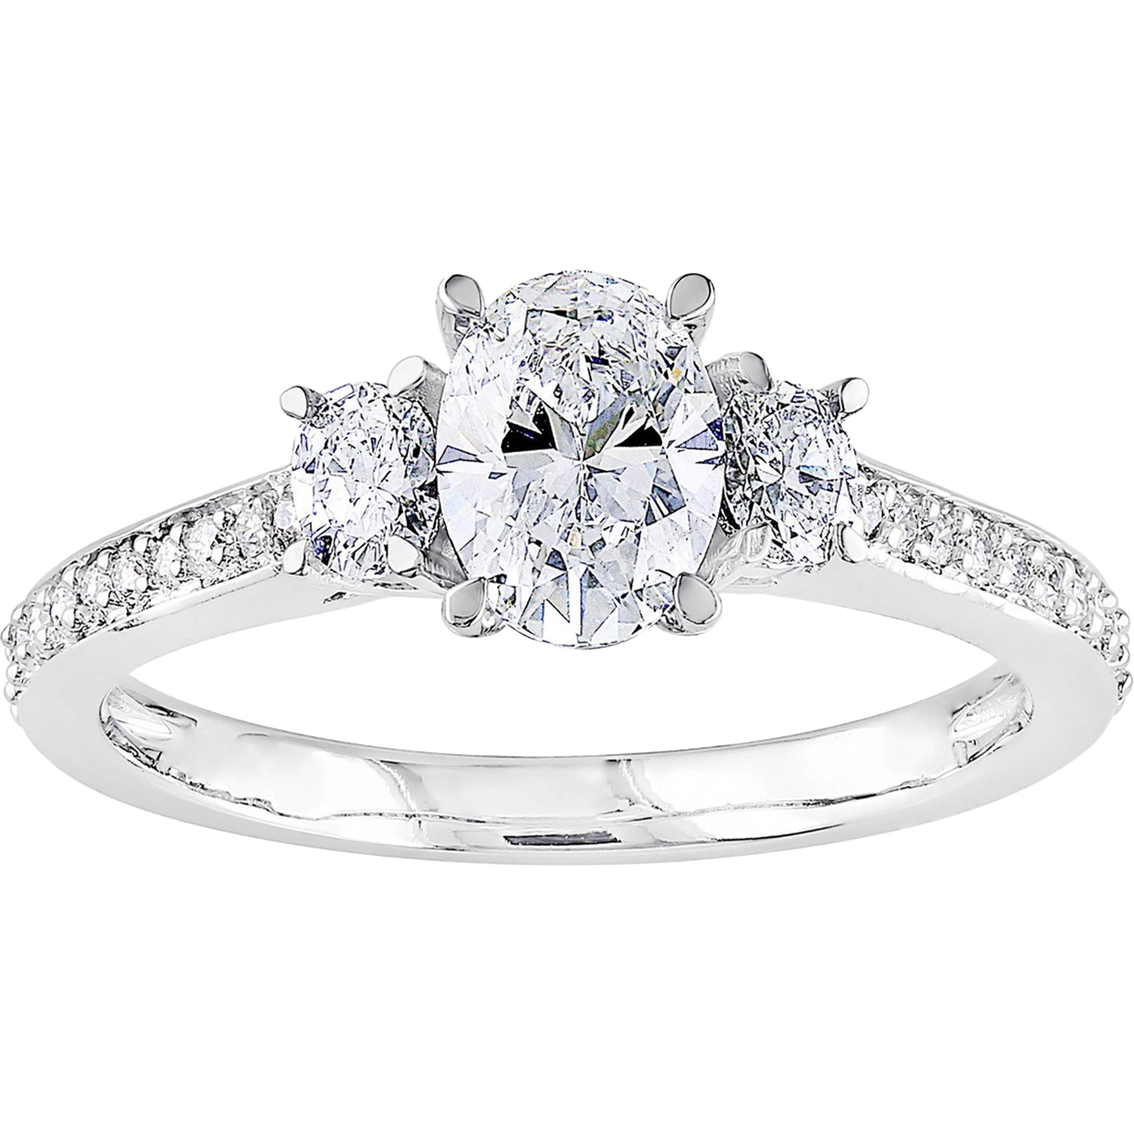 Diamore 14k White Gold 1 1 10 Ctw Oval Cut Diamond 3 Stone